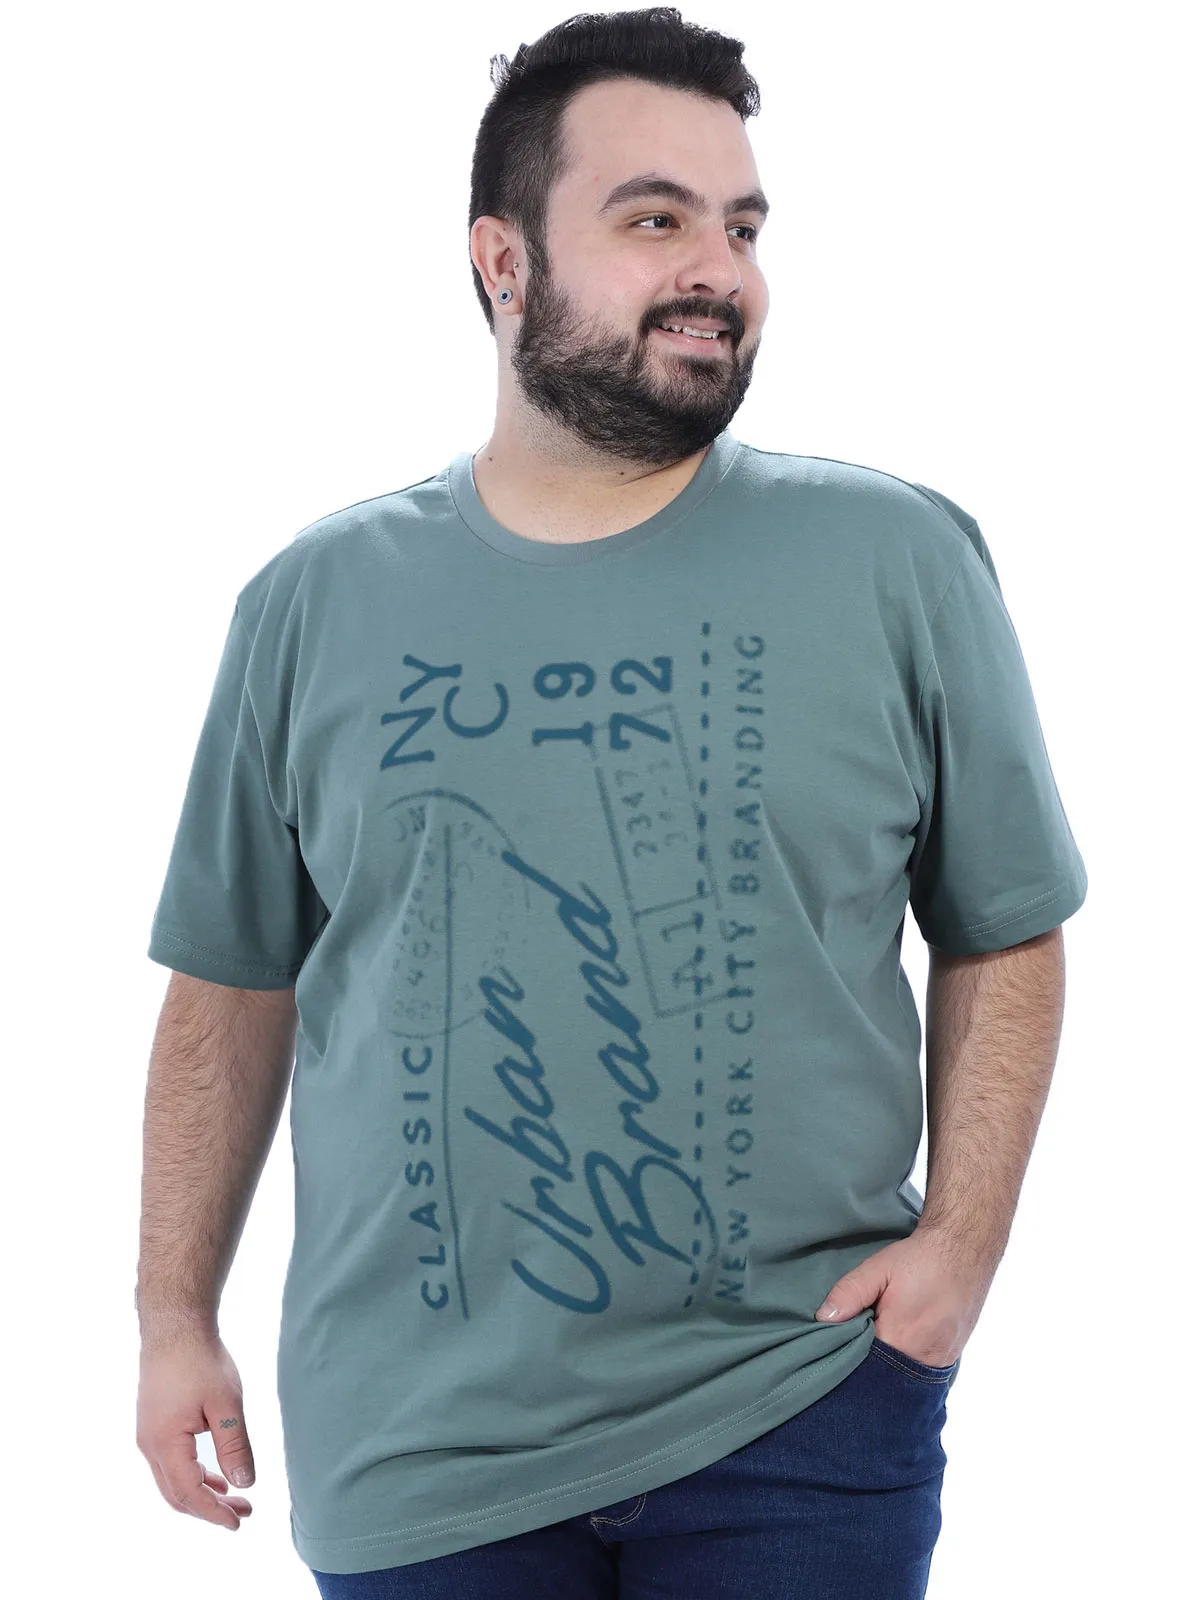 Camiseta Plus Size Masculino Gola Careca Estampada Concreto